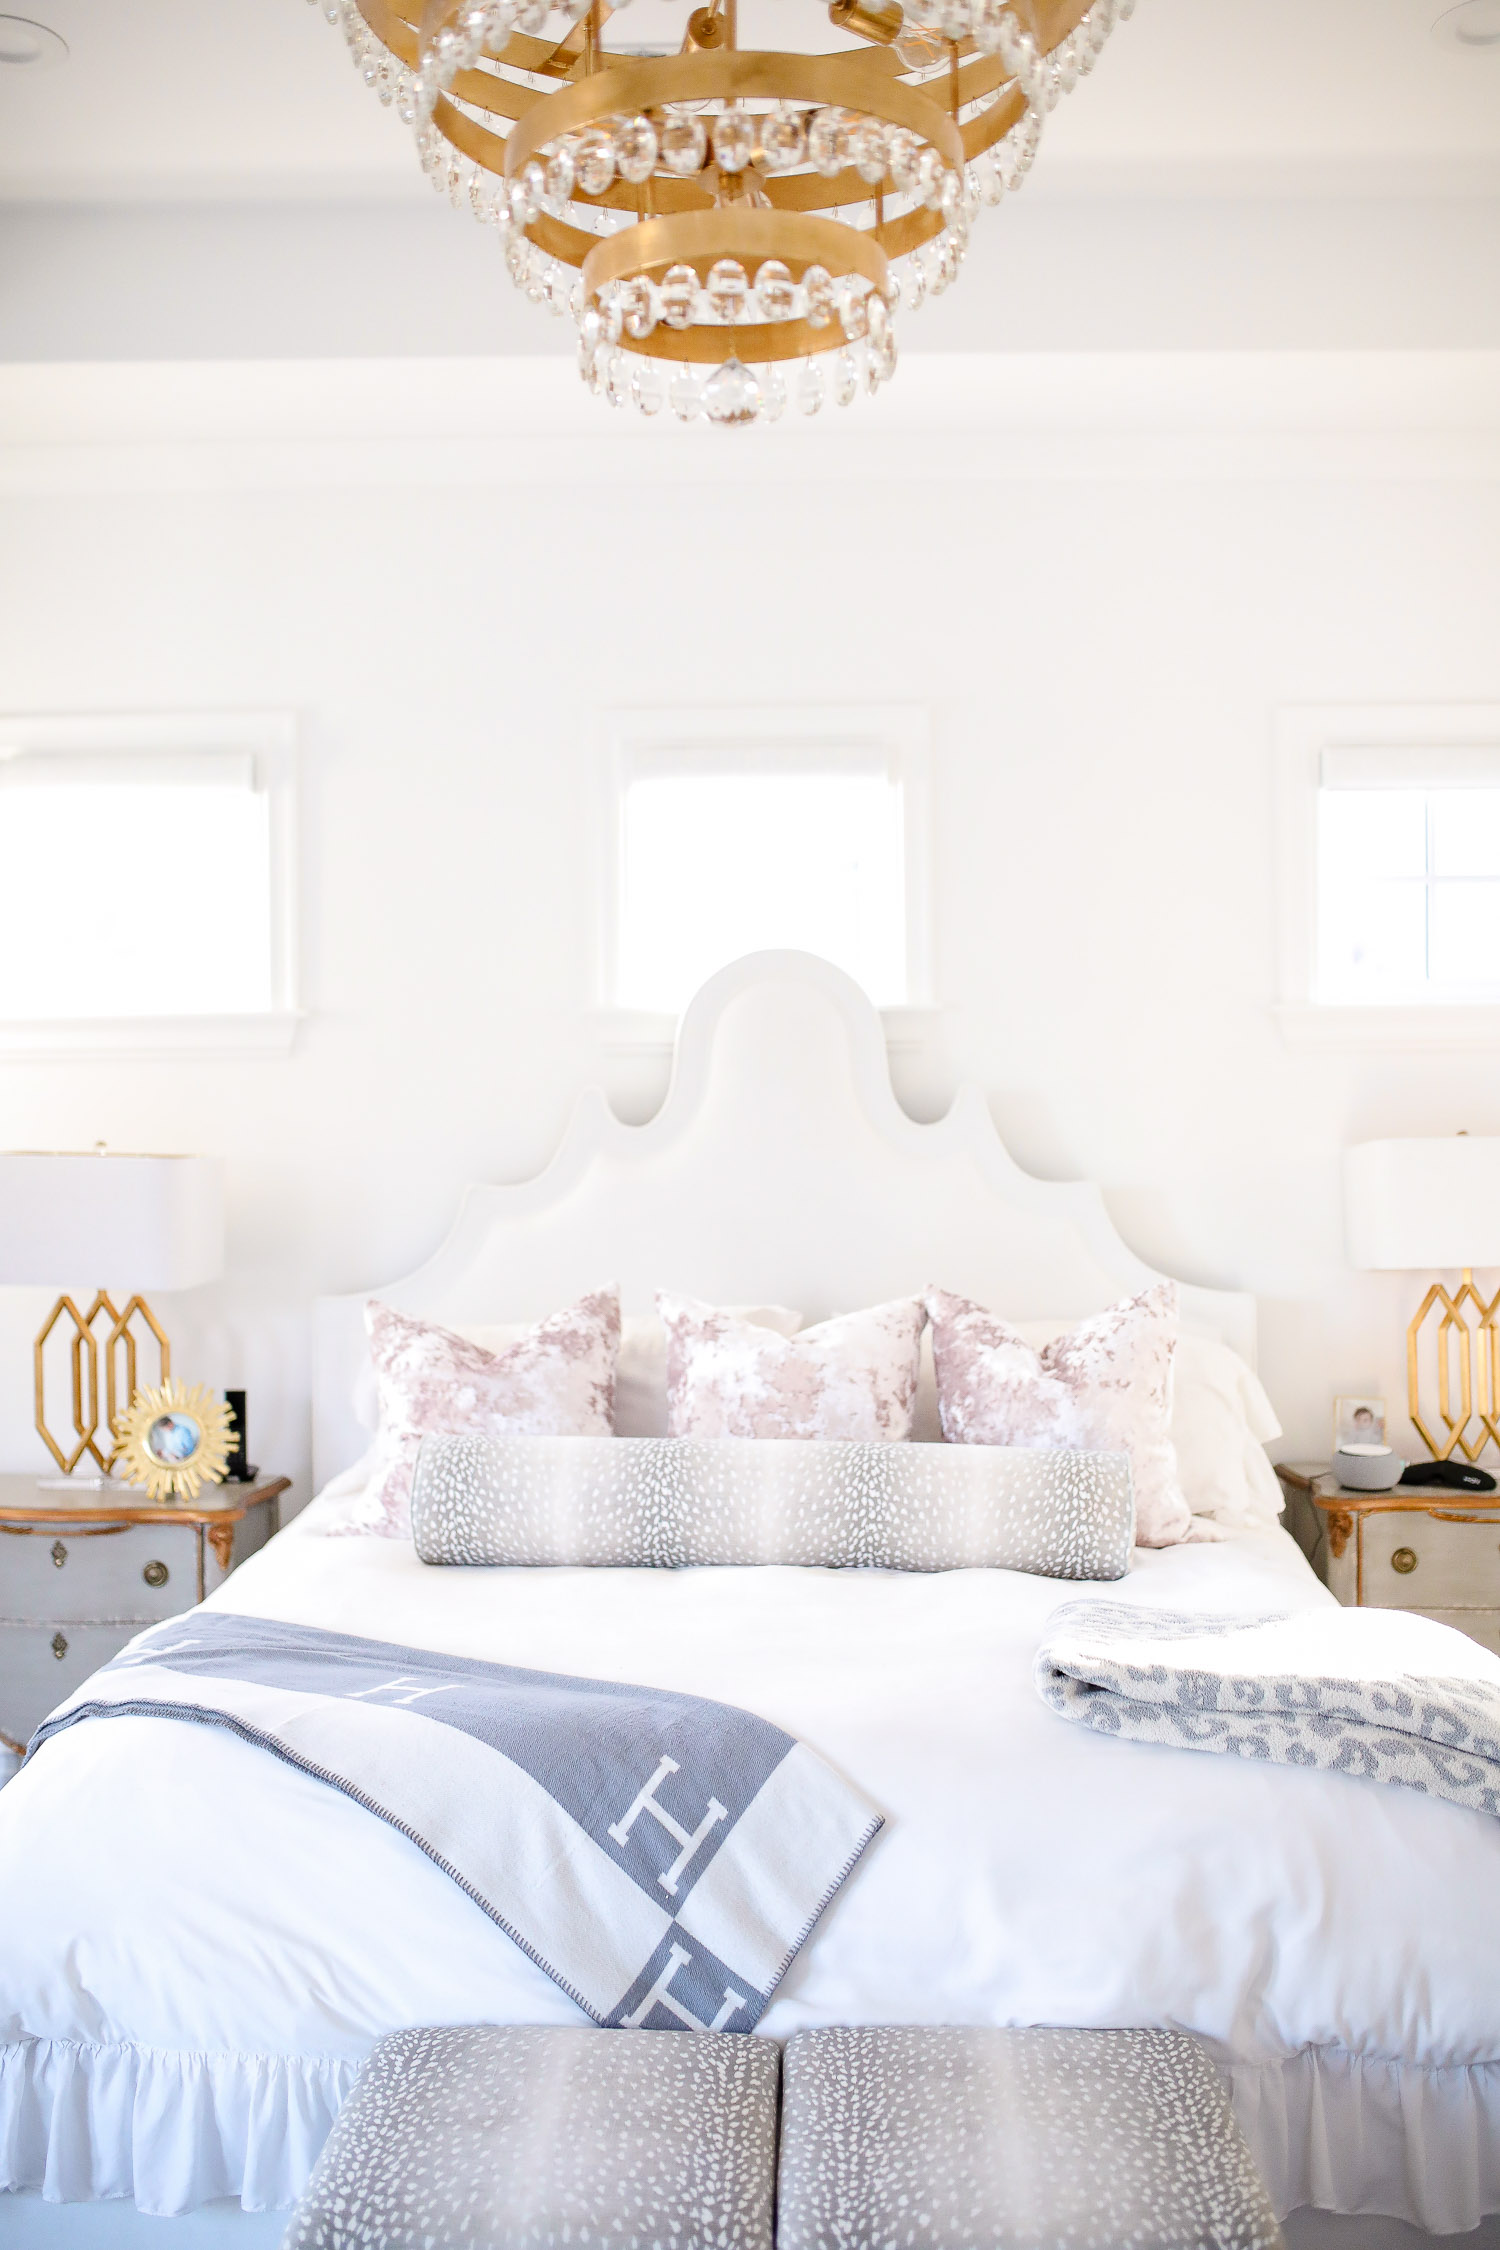 verishop, verishop review, pinterest master bedroom inspo, emily gemma, hooker furniture nightstands-2 | Cozy Essentials by popular US fashion blog, The Sweetest Thing: image of a bed with Verishop NIGHT 4 Ways Beauty Pillows.